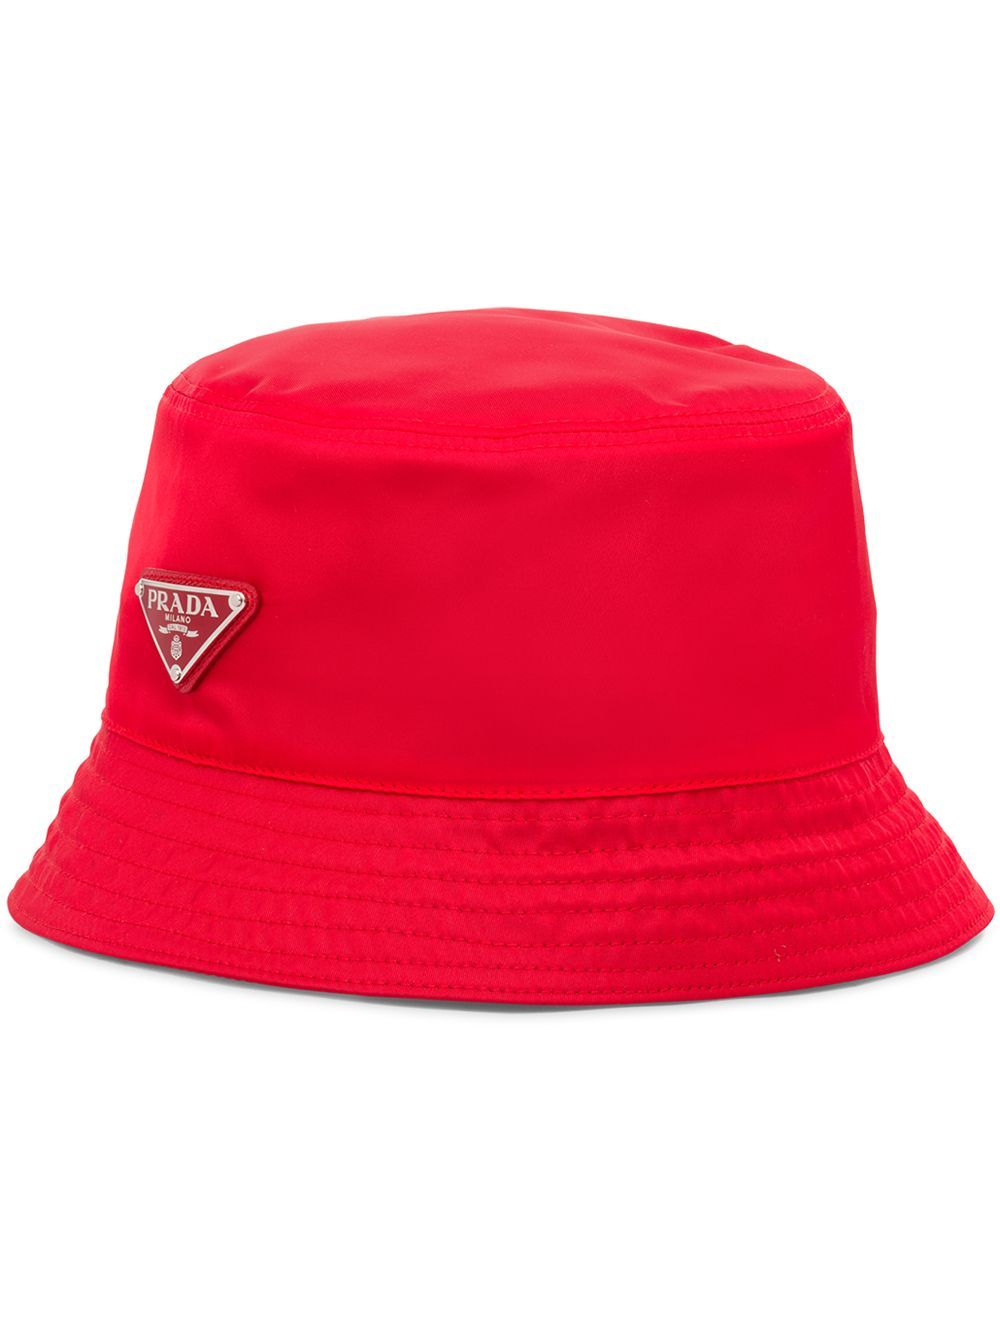 Prada PRADA MEN'S RED POLYESTER HAT